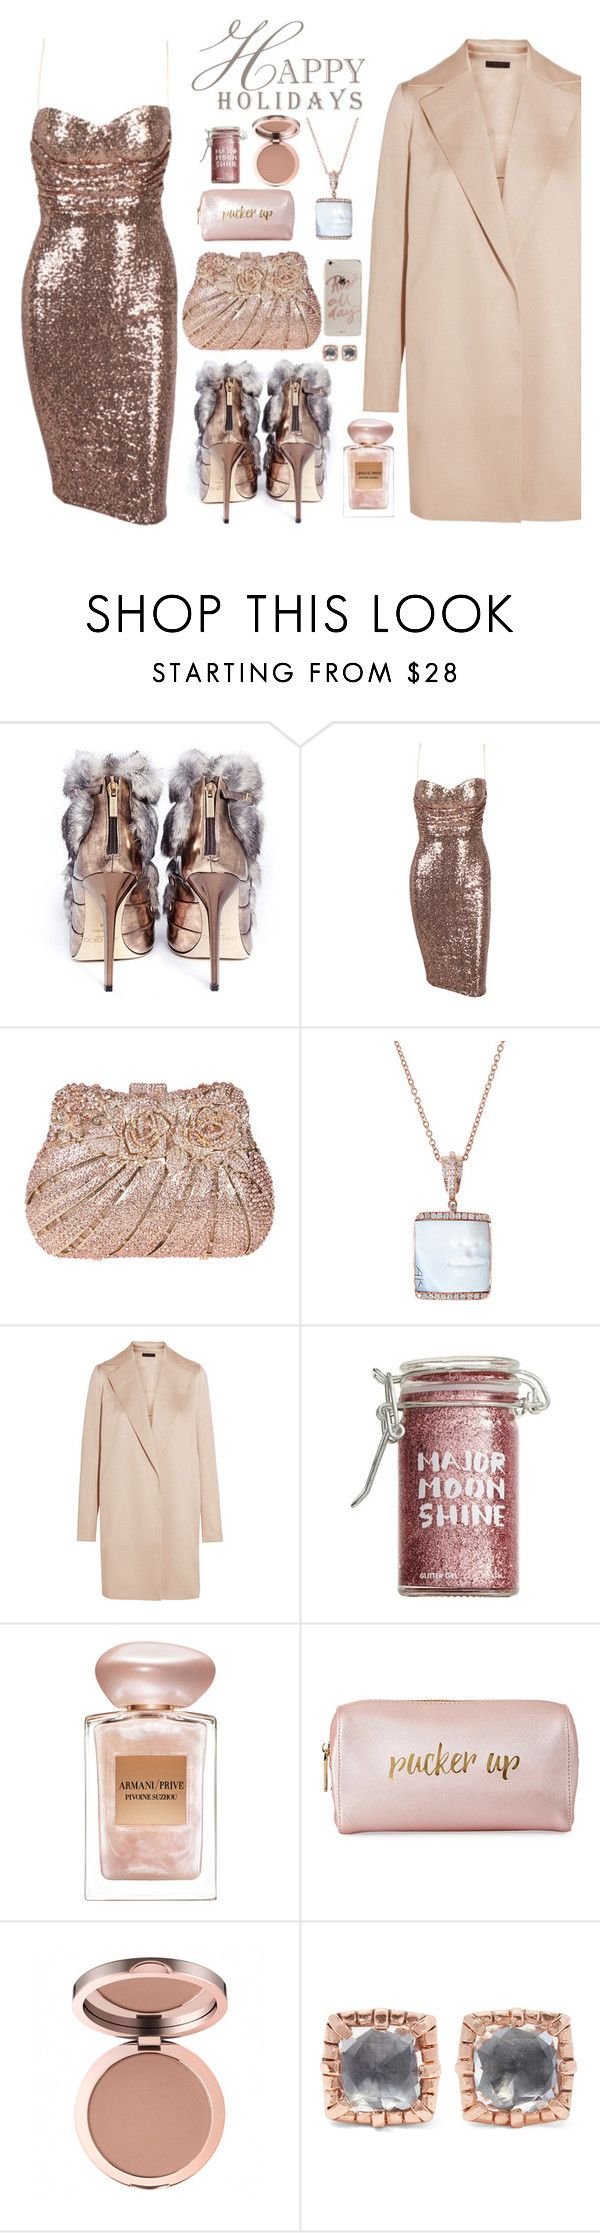 """""""Glitter for the Holidays"""" by seafreak83 on Polyvore featuring Jimmy Choo, Socheec, The Row, Major Moonshine, Giorgio Armani, Neiman Marcus, Larkspur & Hawk and Sonix"""